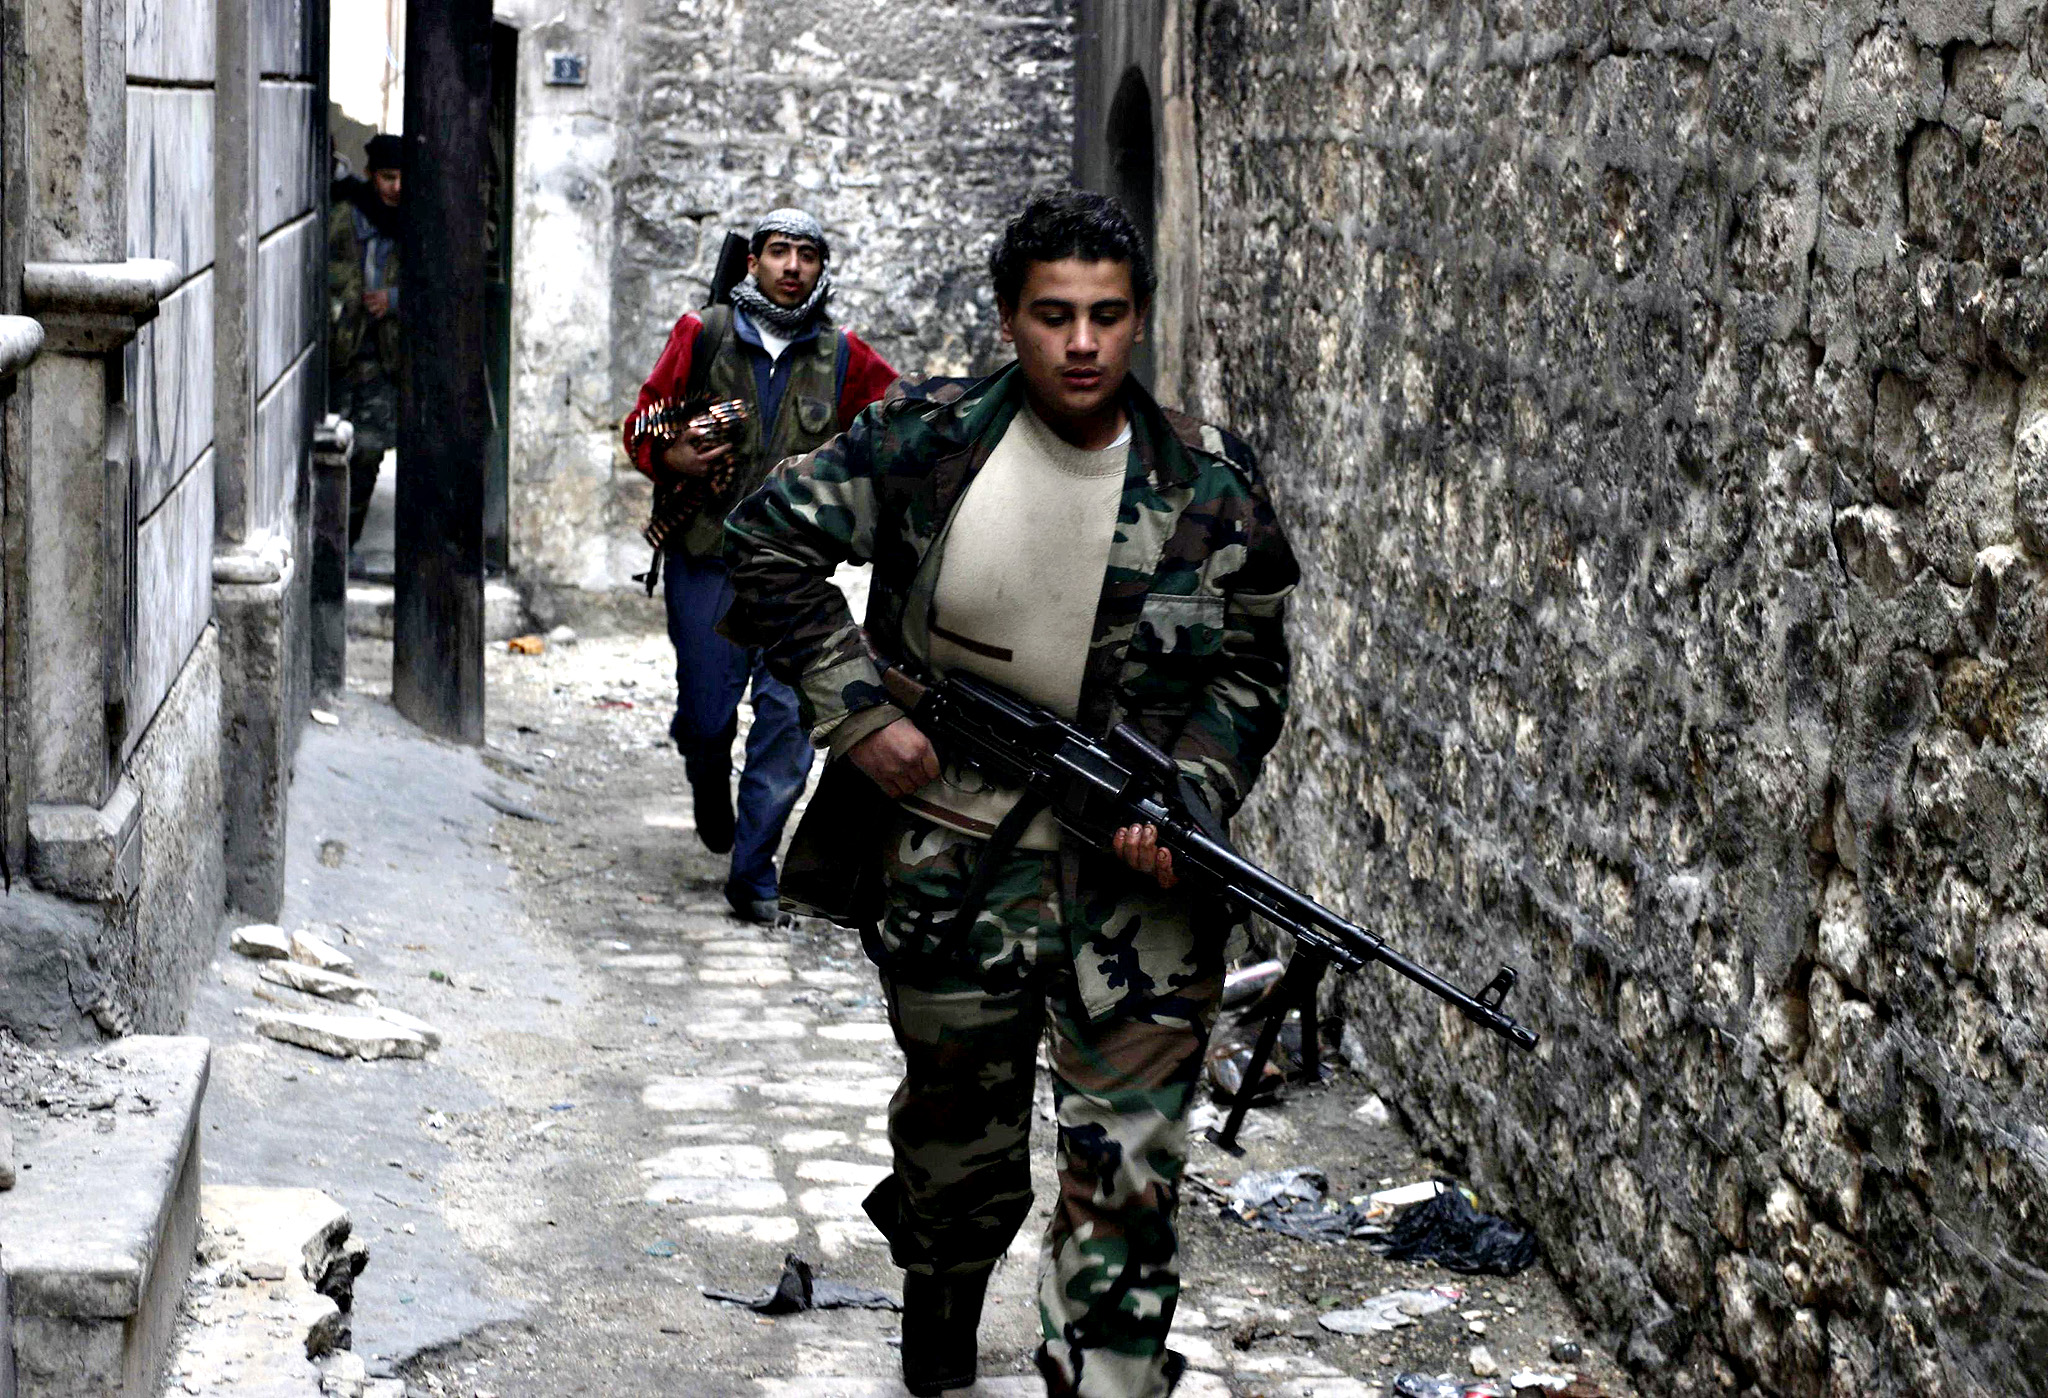 Rebel fighters carry their weapons as they move towards their positions at the frontline against forces loyal to Assad in Maysaloun neighborhood in the old city of Aleppo...Rebel fighters carry their weapons as they move towards their positions at the frontline against forces loyal to Syria's President Bashar al-Assad in Maysaloun neighborhood in the old city of Aleppo November 24, 2014.